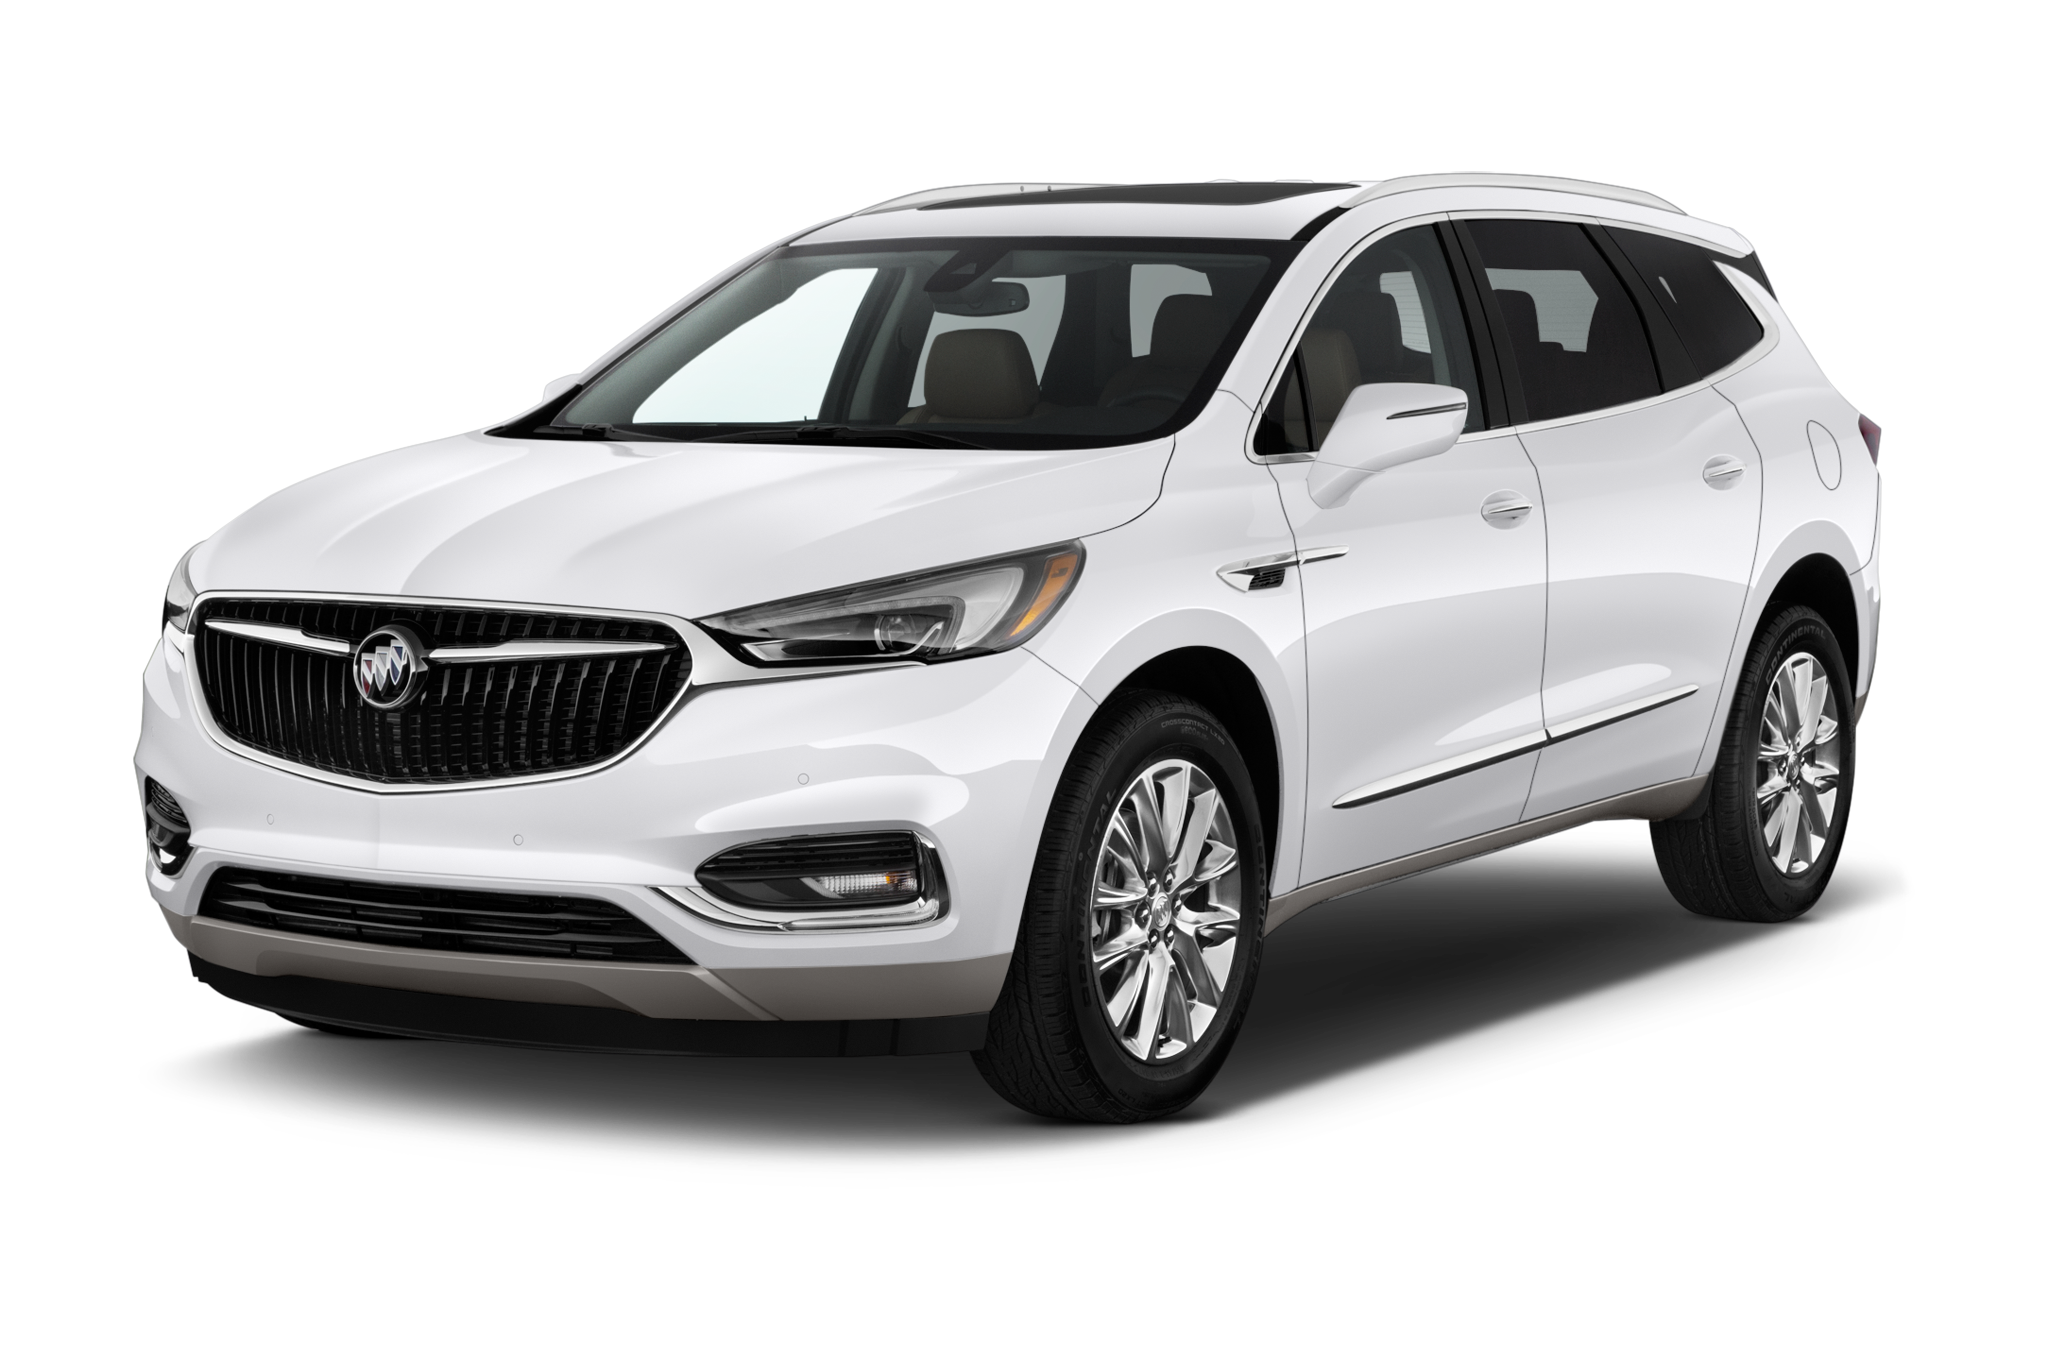 Buick Enspire Electric SUV Concept Coming to Beijing with ...